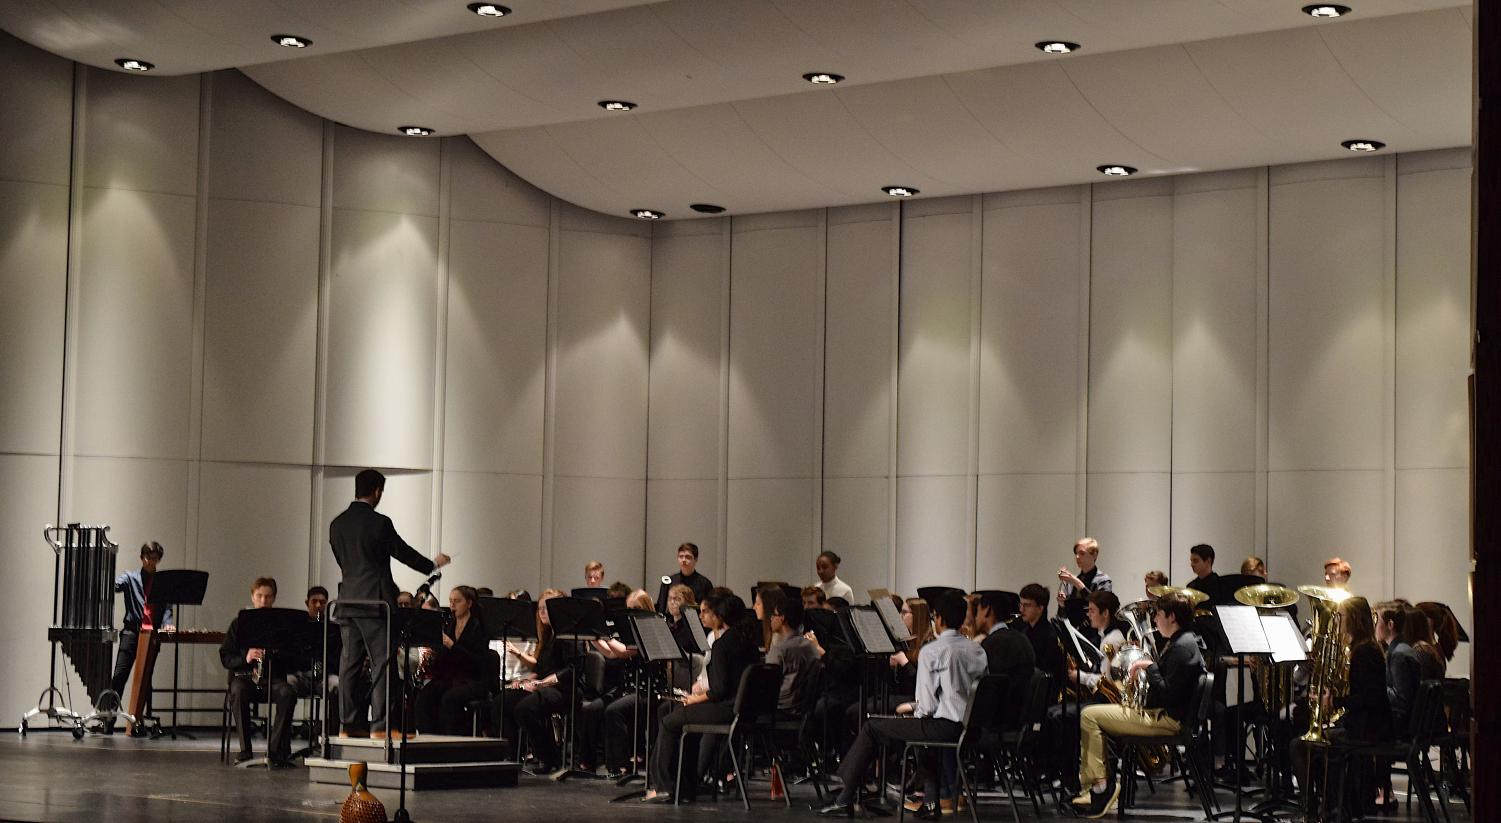 The+band+and+the+conductor+under+the+soft+spotlights%2C+performing+a+piece+they%27ve+been+preparing.